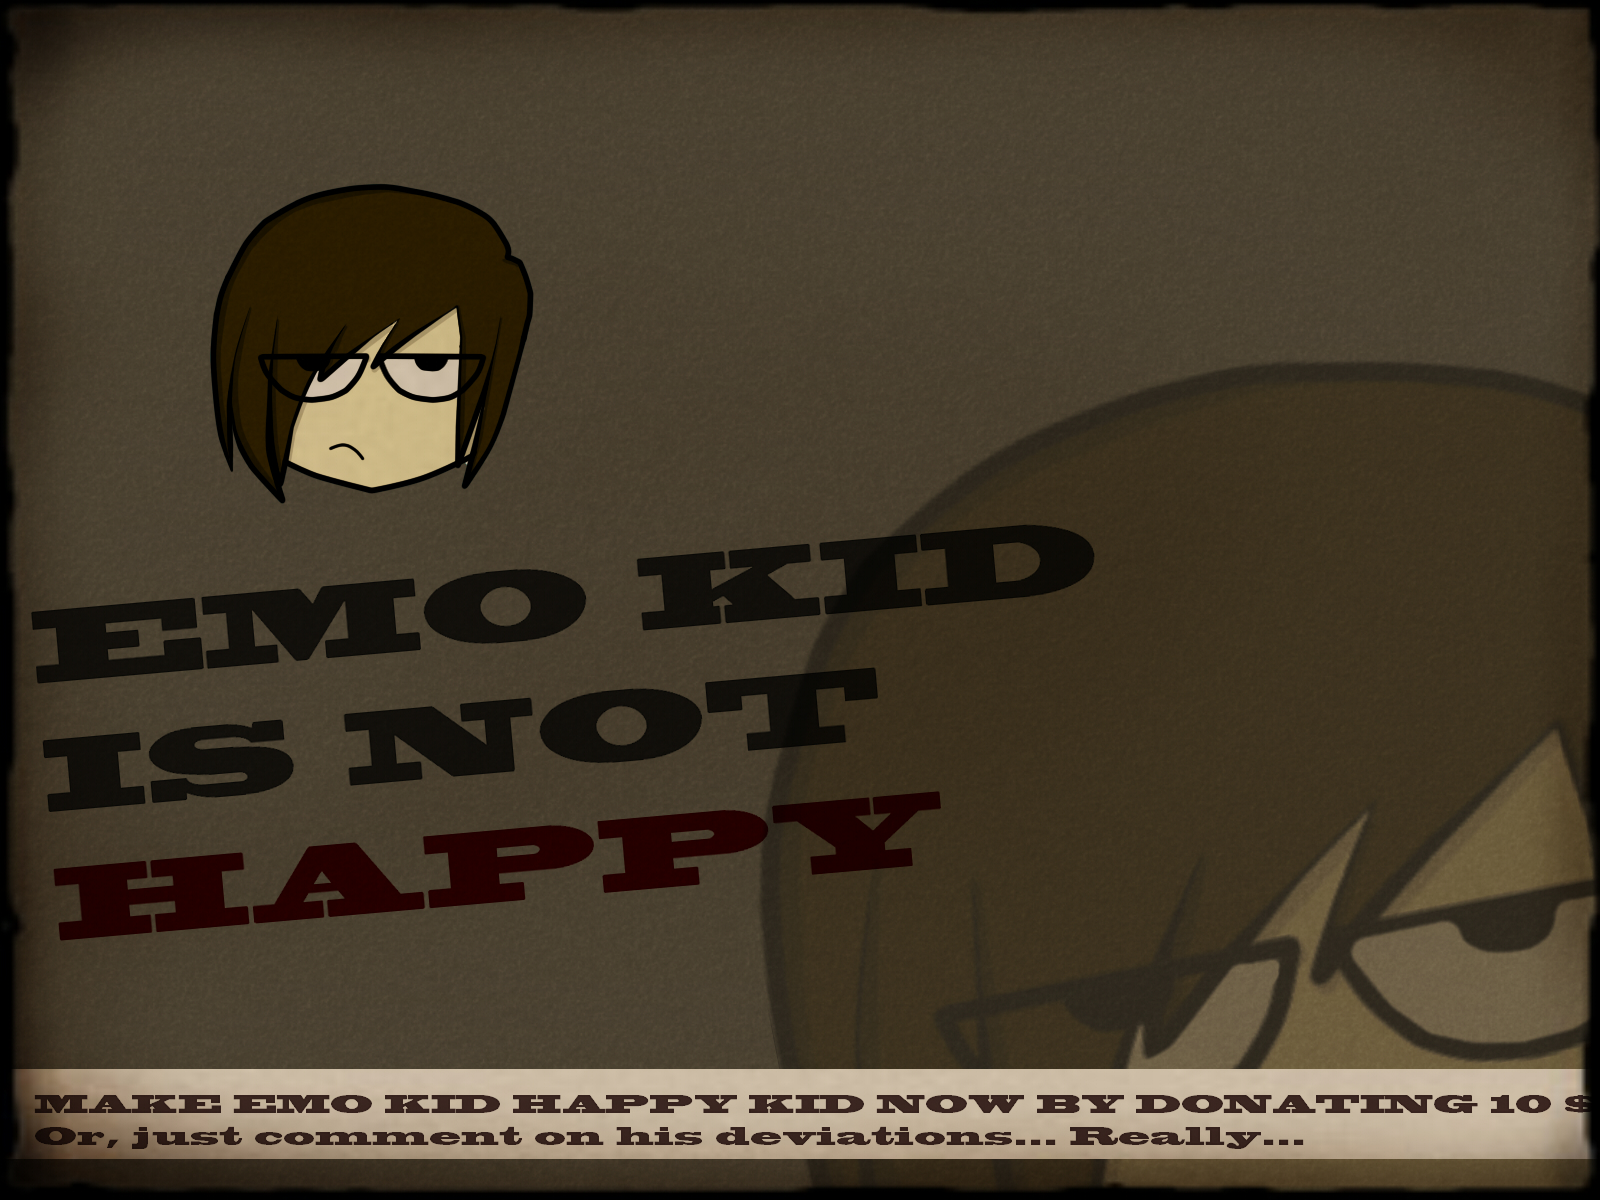 Emo kid is not happy!